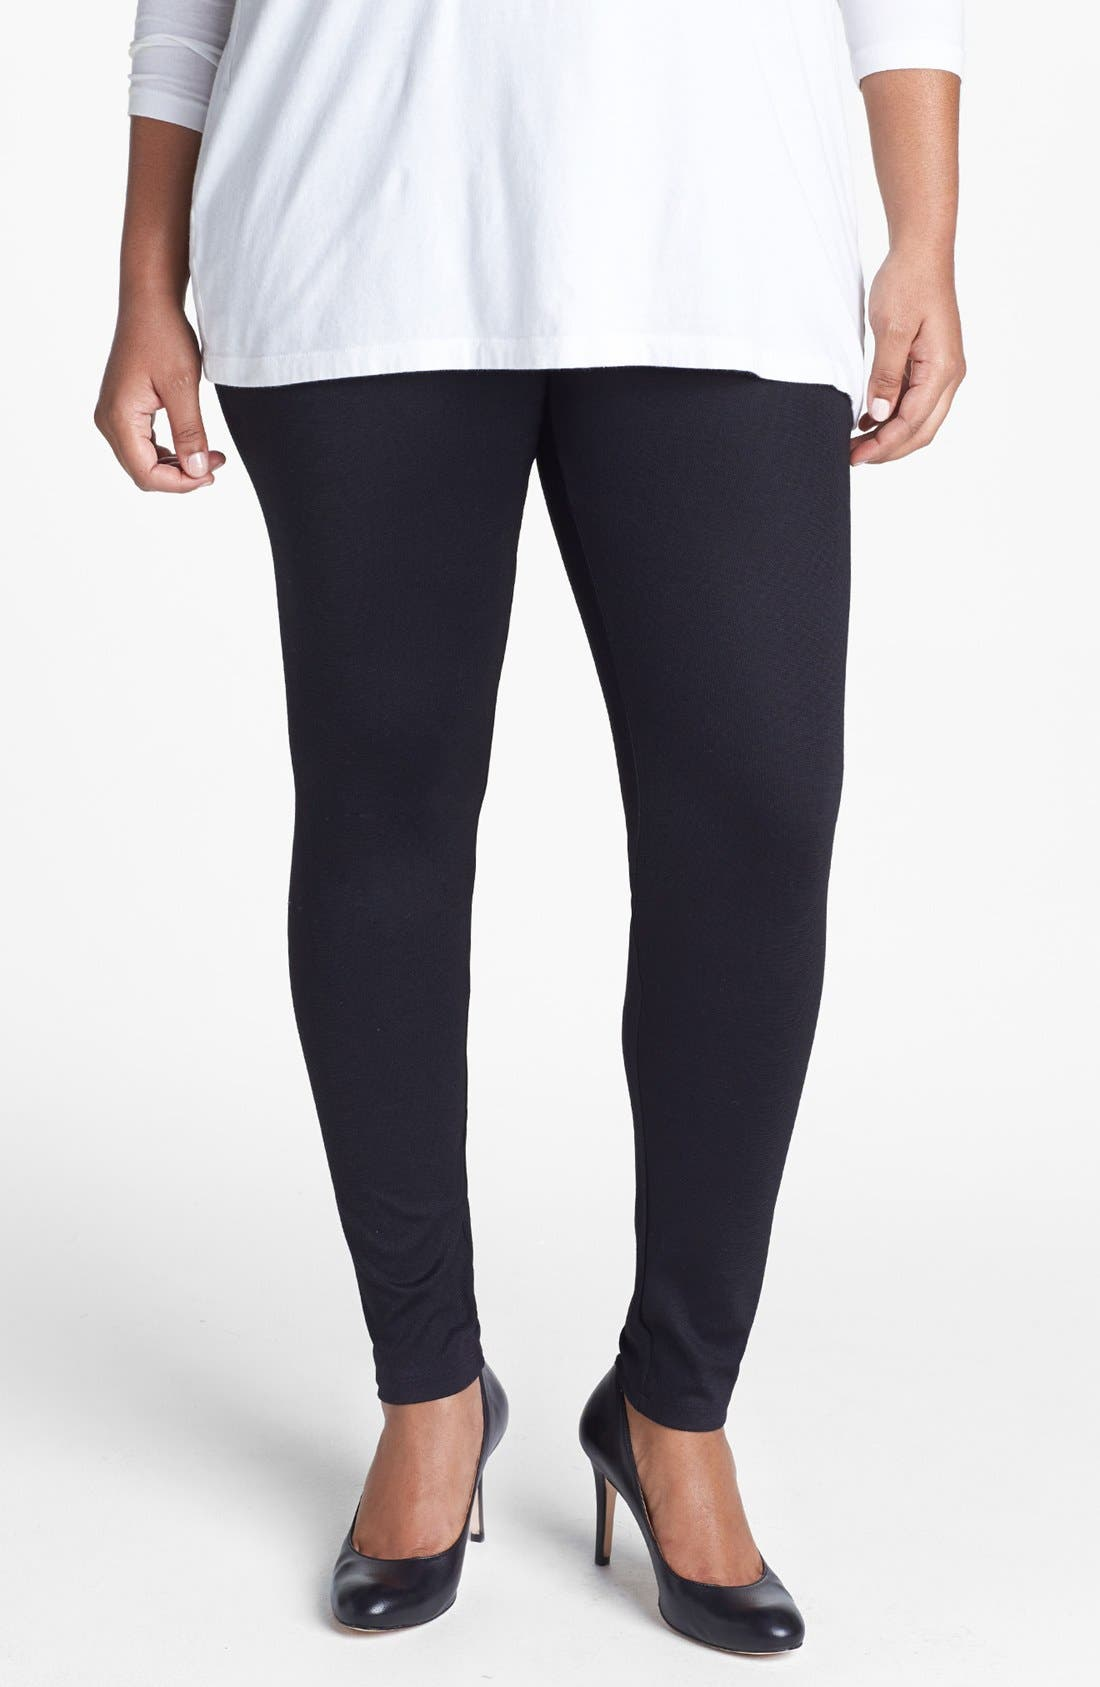 Alternate Image 1 Selected - Sejour Ponte Knit Leggings (Plus Size)